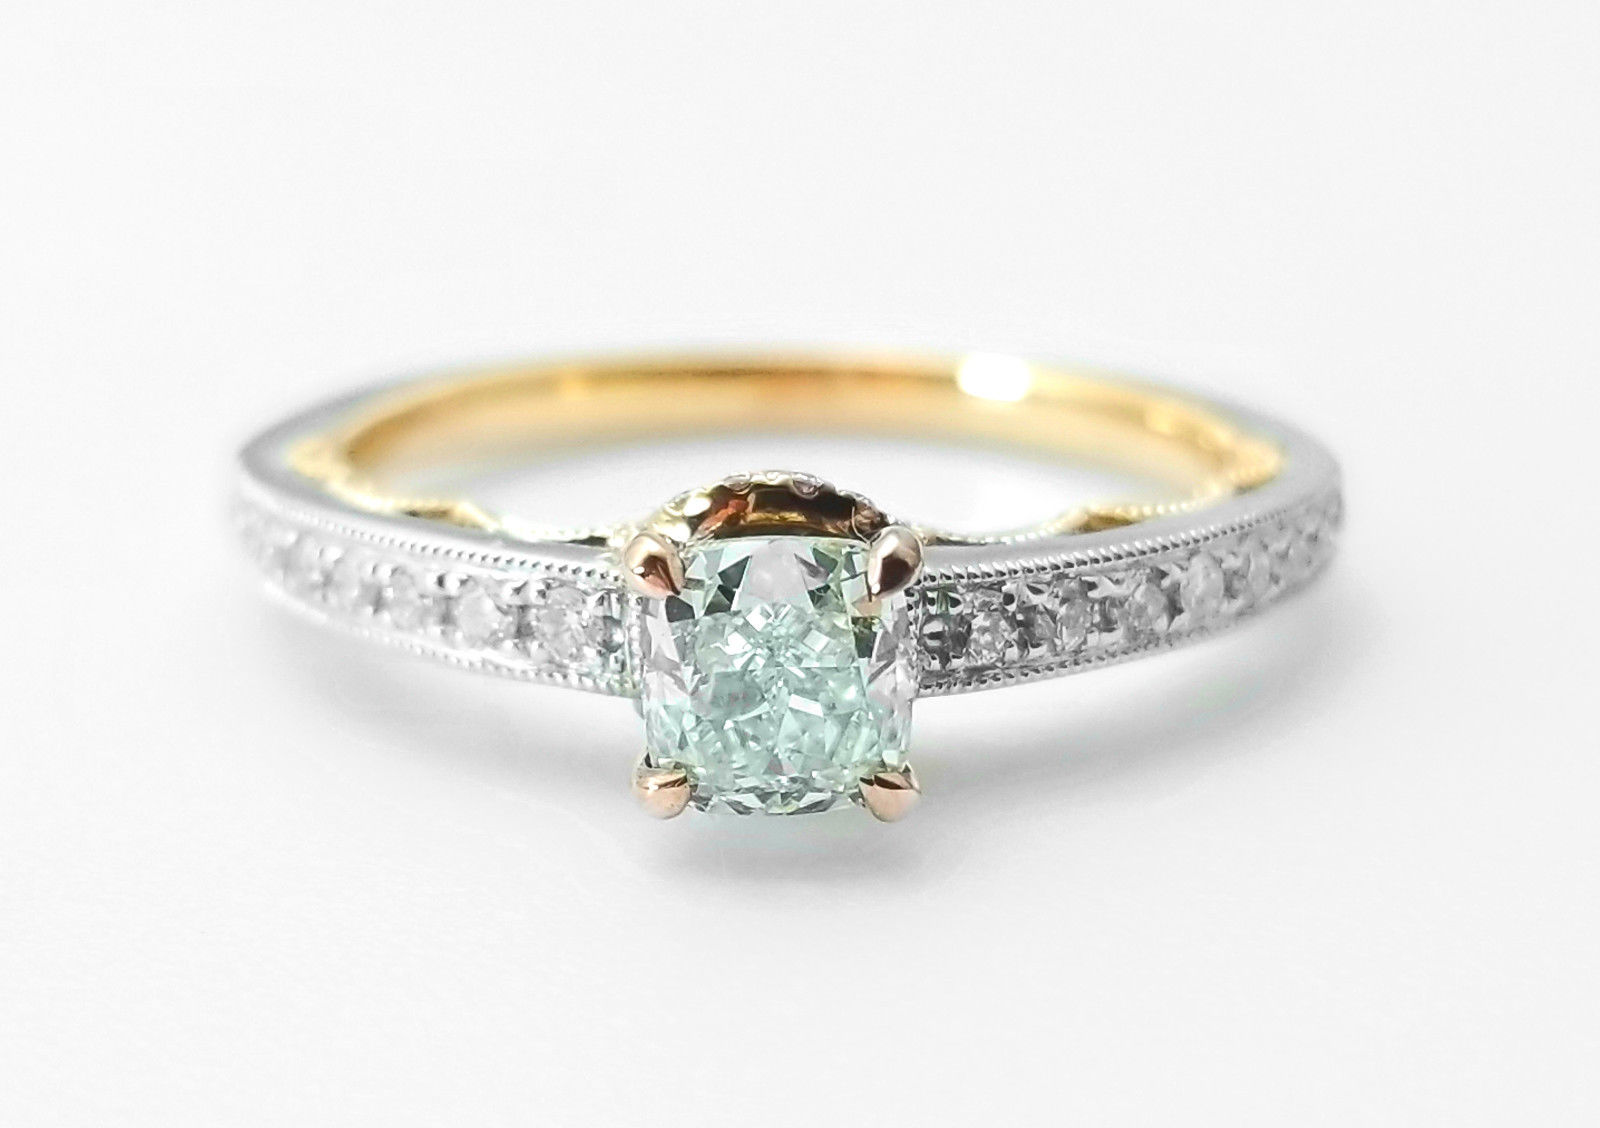 0.67ct Natural Fancy Light Green Diamond Engagement Ring GIA 18K Gold VS2